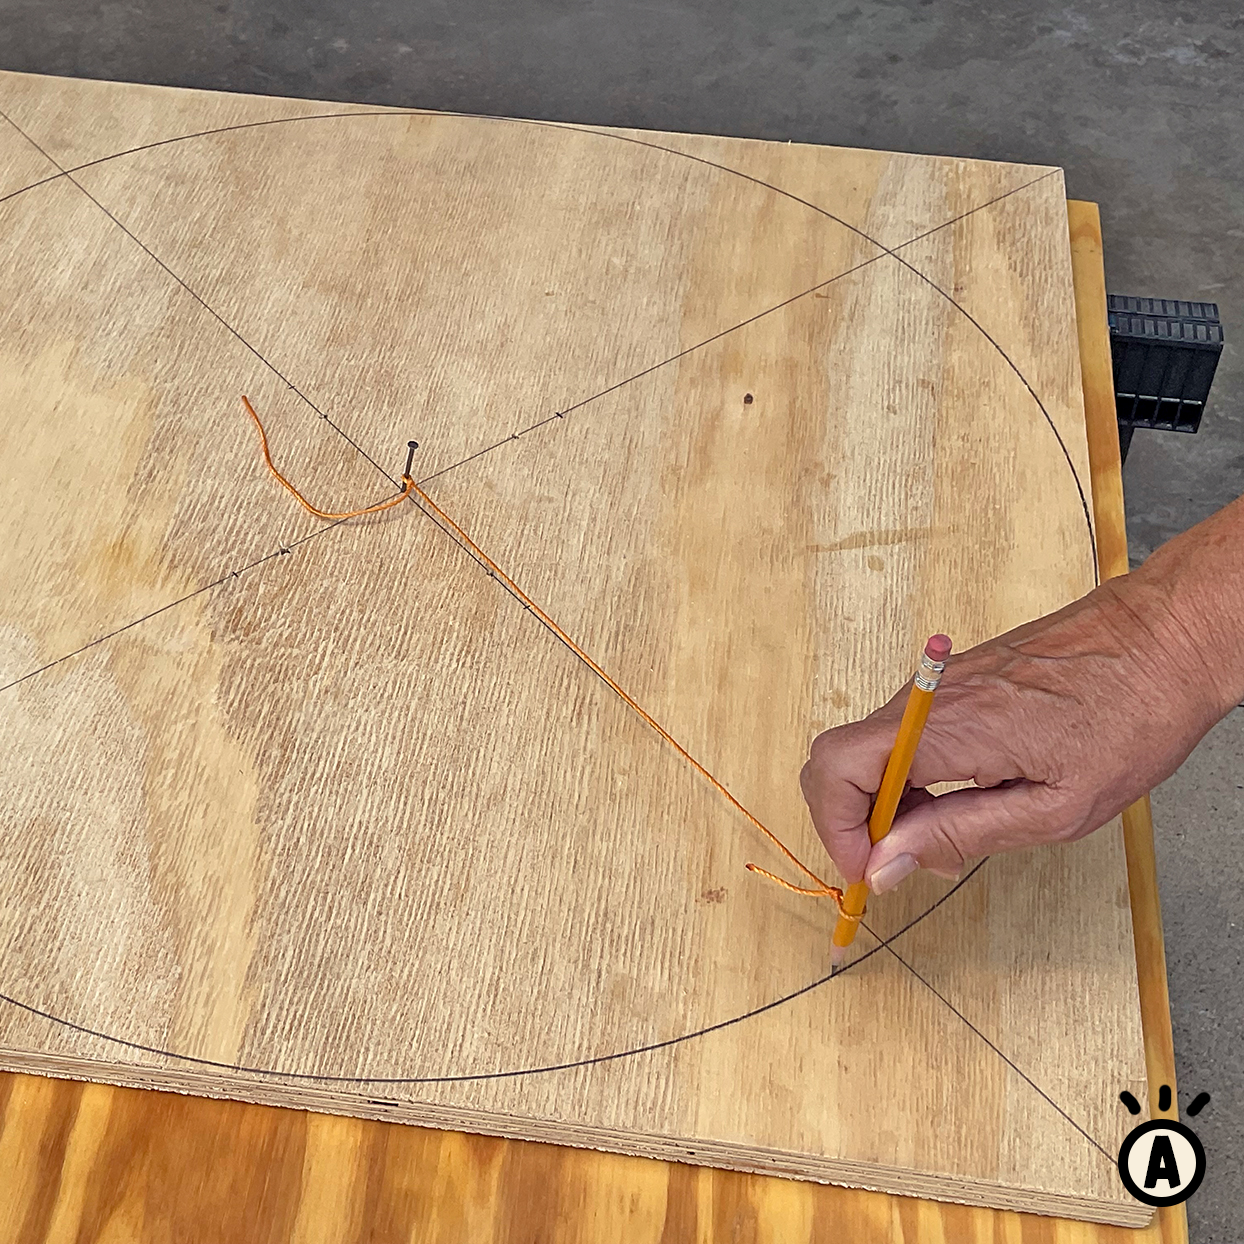 diy cat scratcher how-to step a drawing a circle onto wood using pencil and string